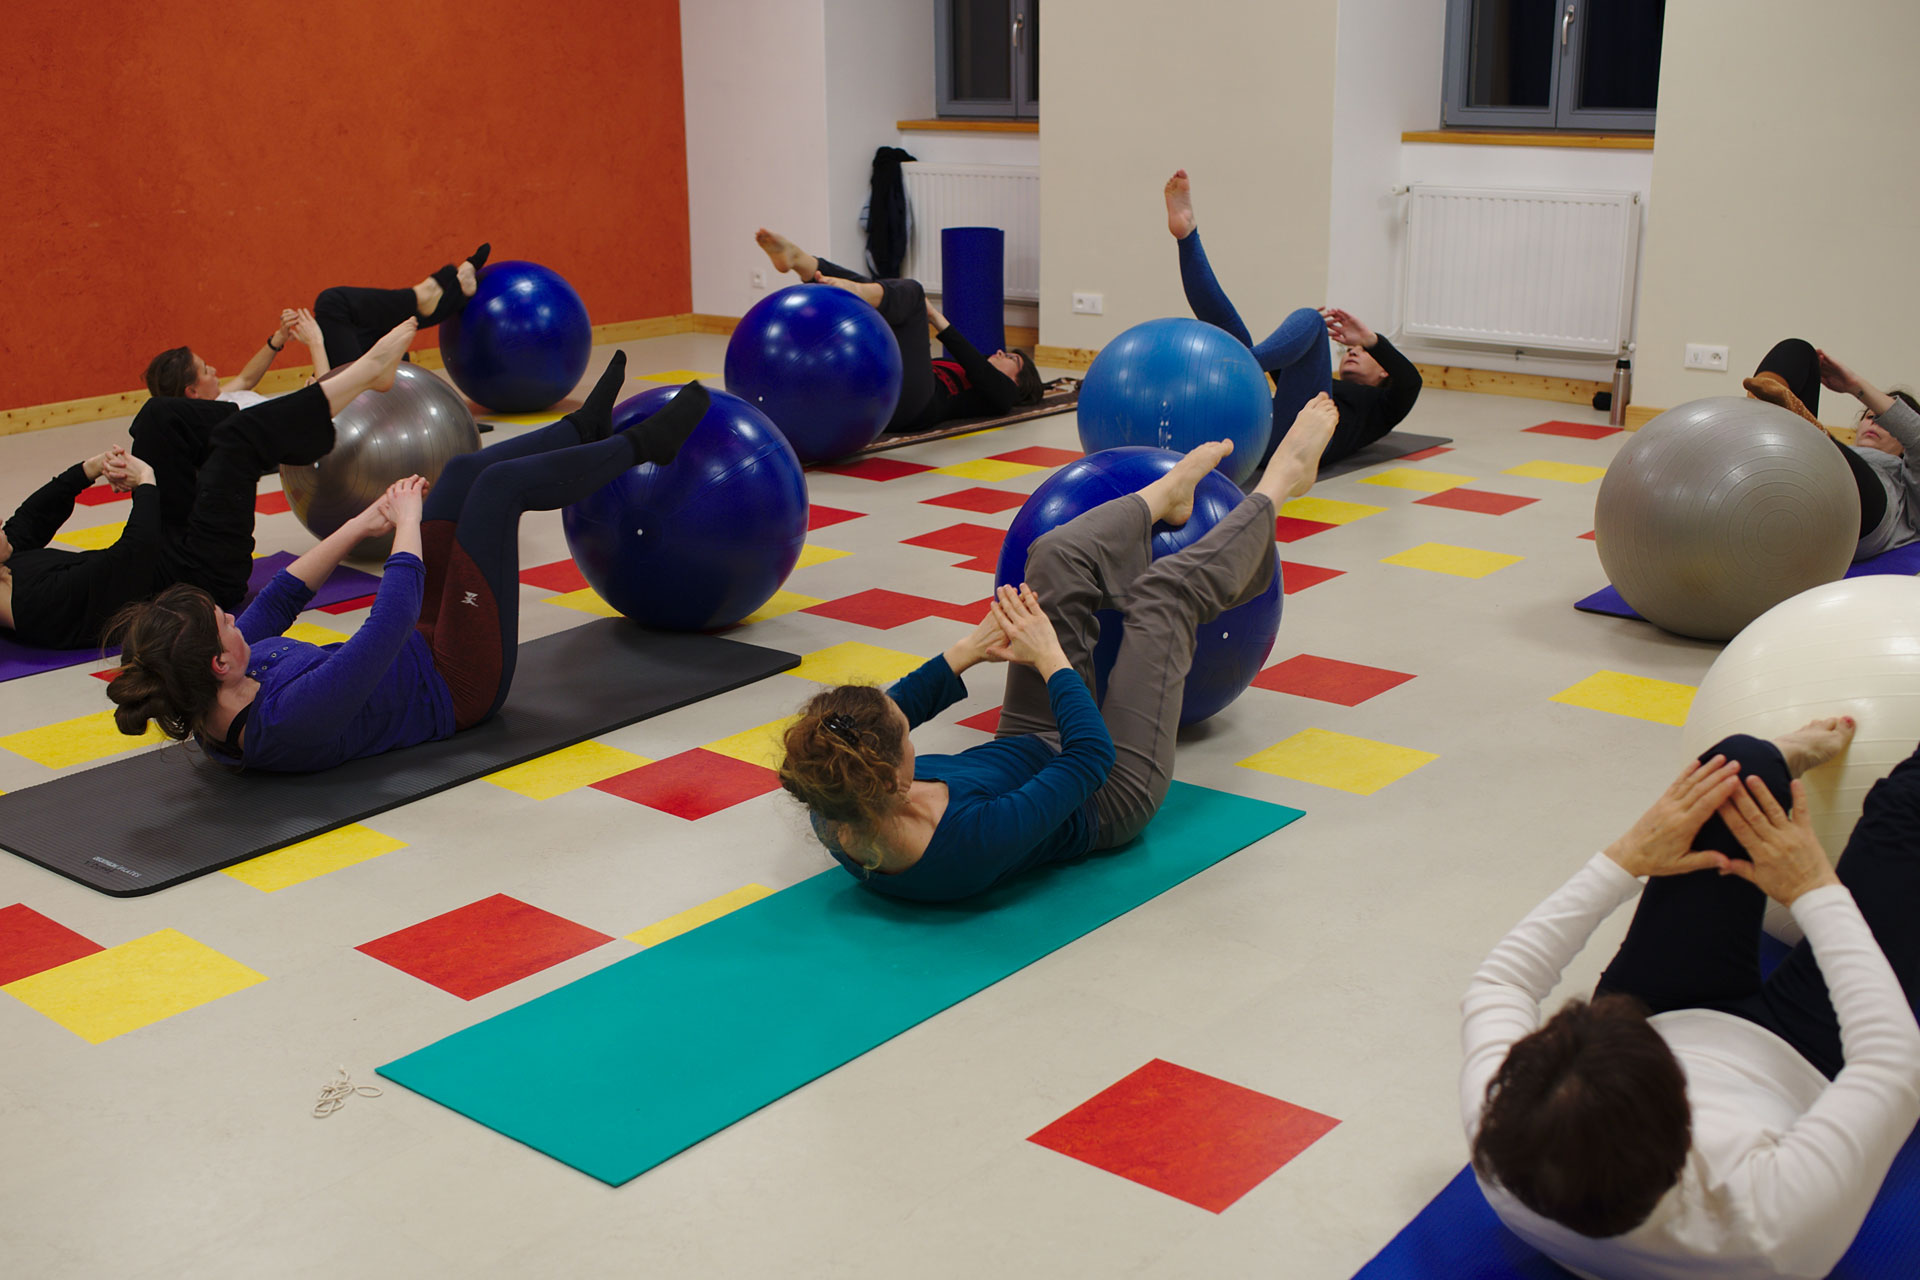 Mina Retali Cours collectif Pilates à Barral à Die